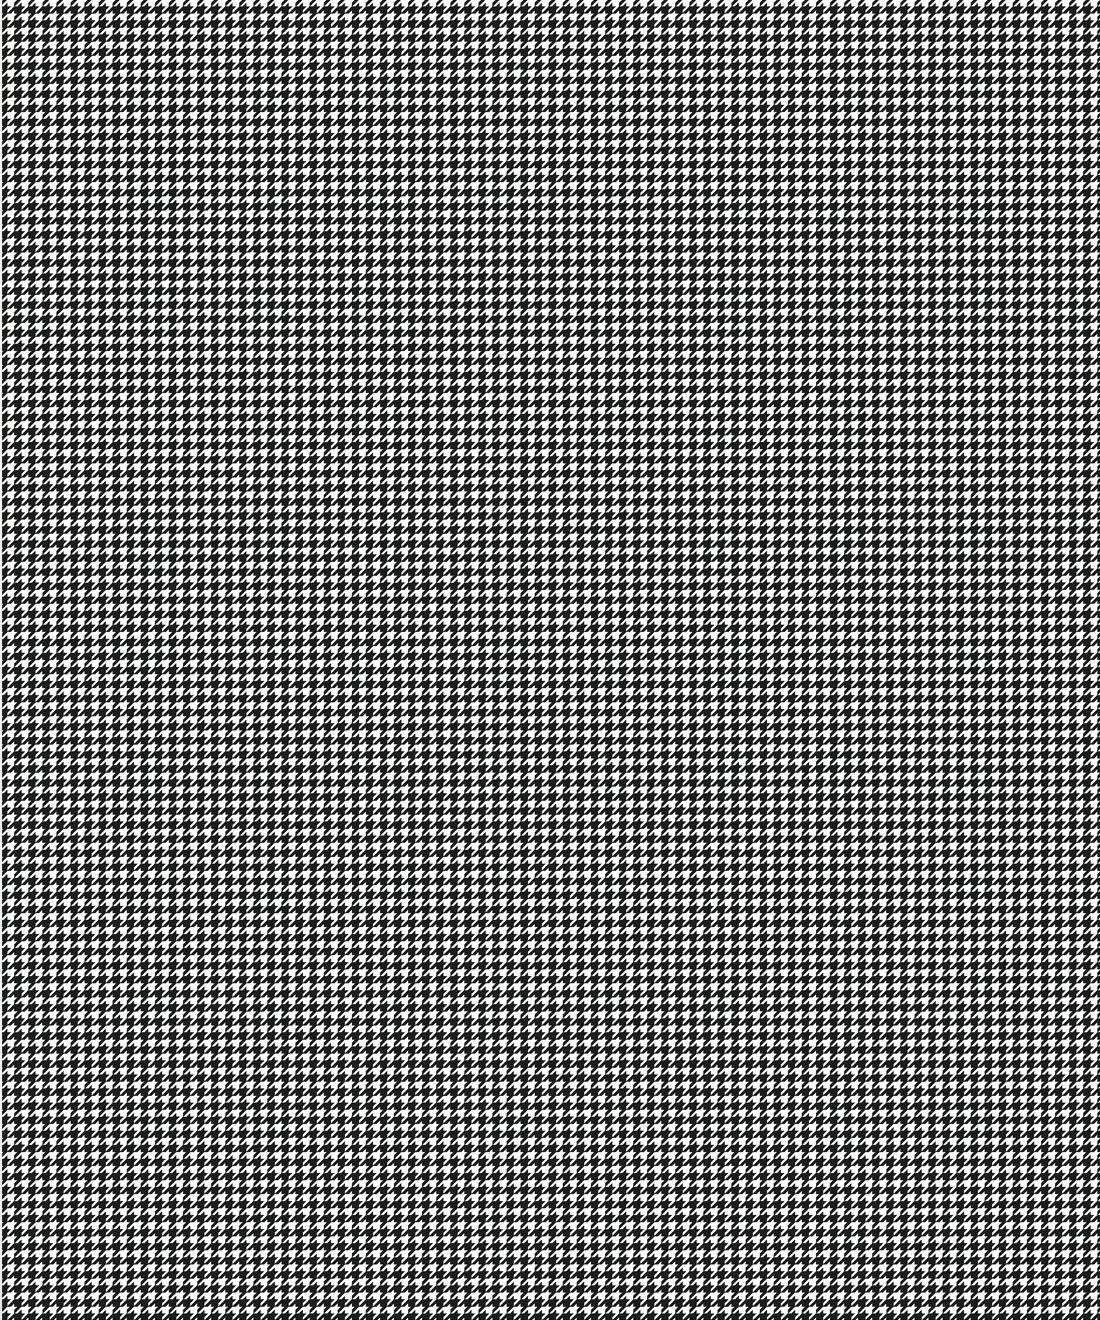 Houndstooth Wallpaper • Dogstooth Wallpaper • Black & White •Swatch